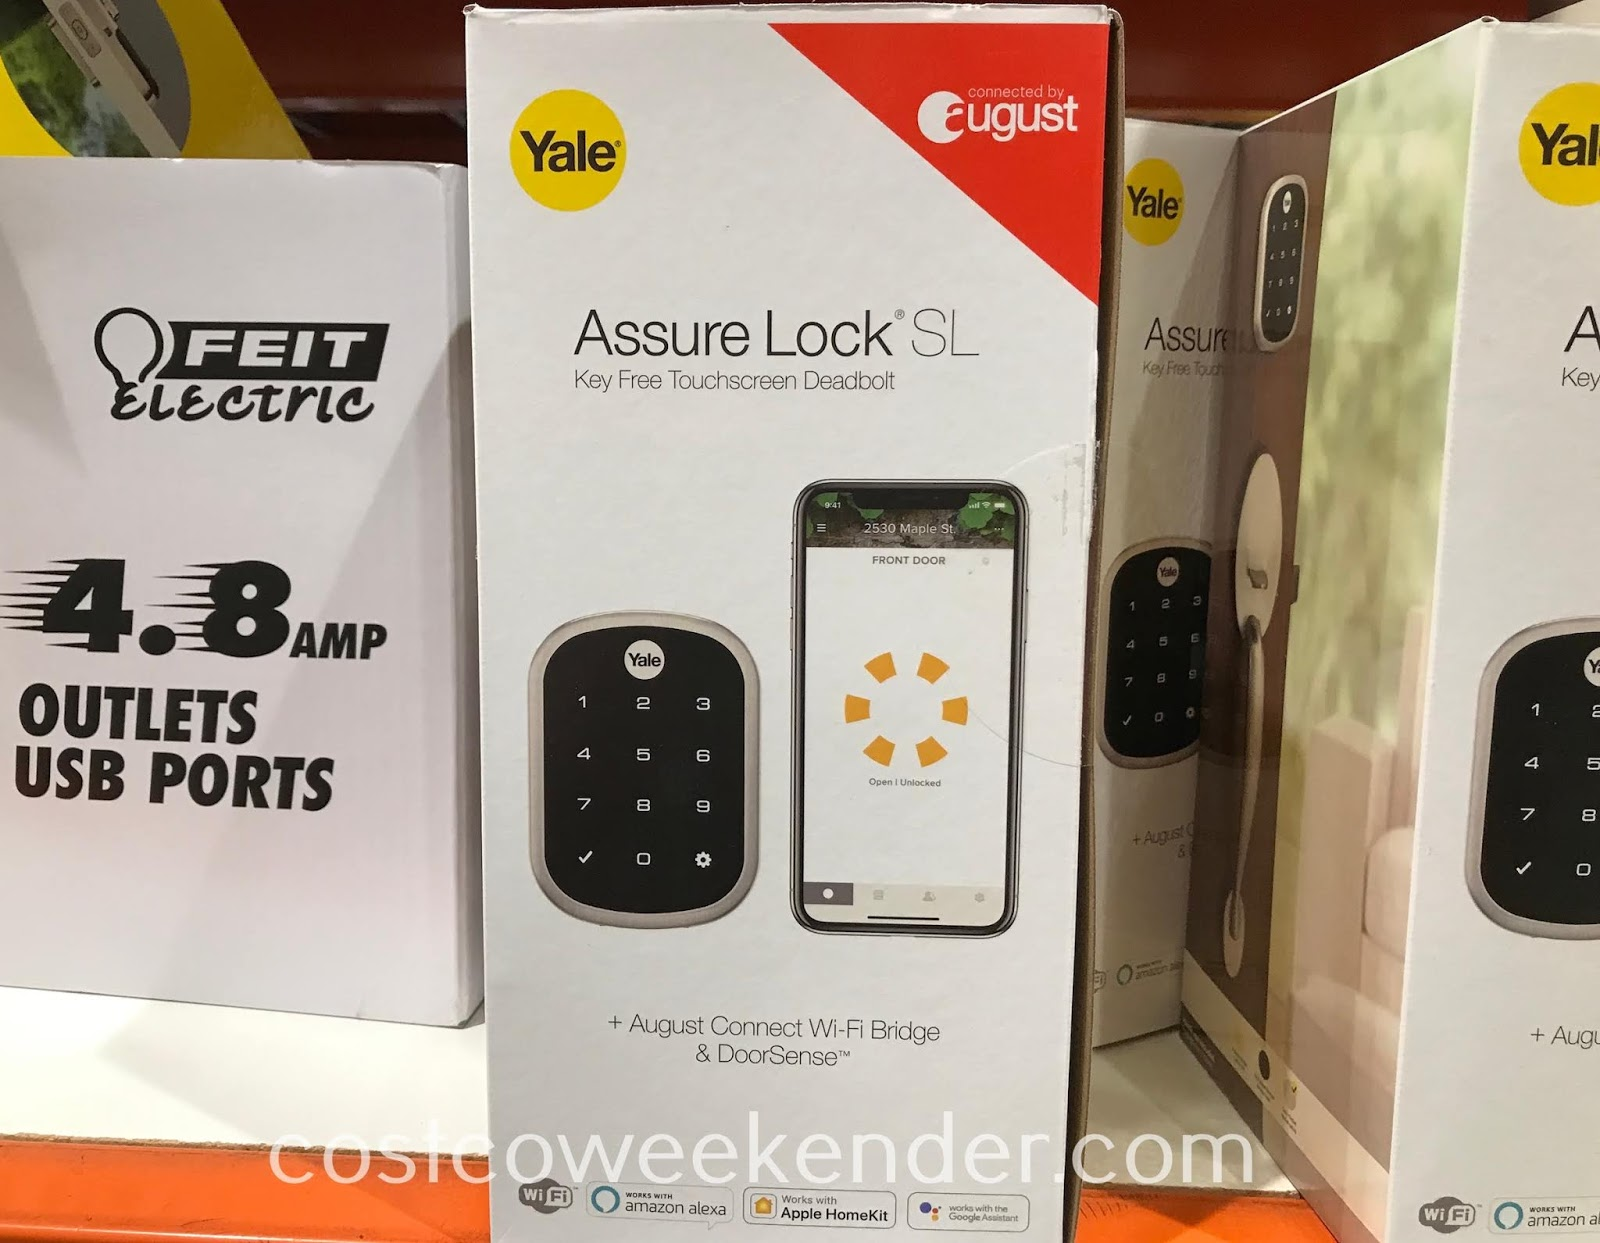 Costco 1369260 - Airbnb hosts will love the Yale Security Assure Lock SL